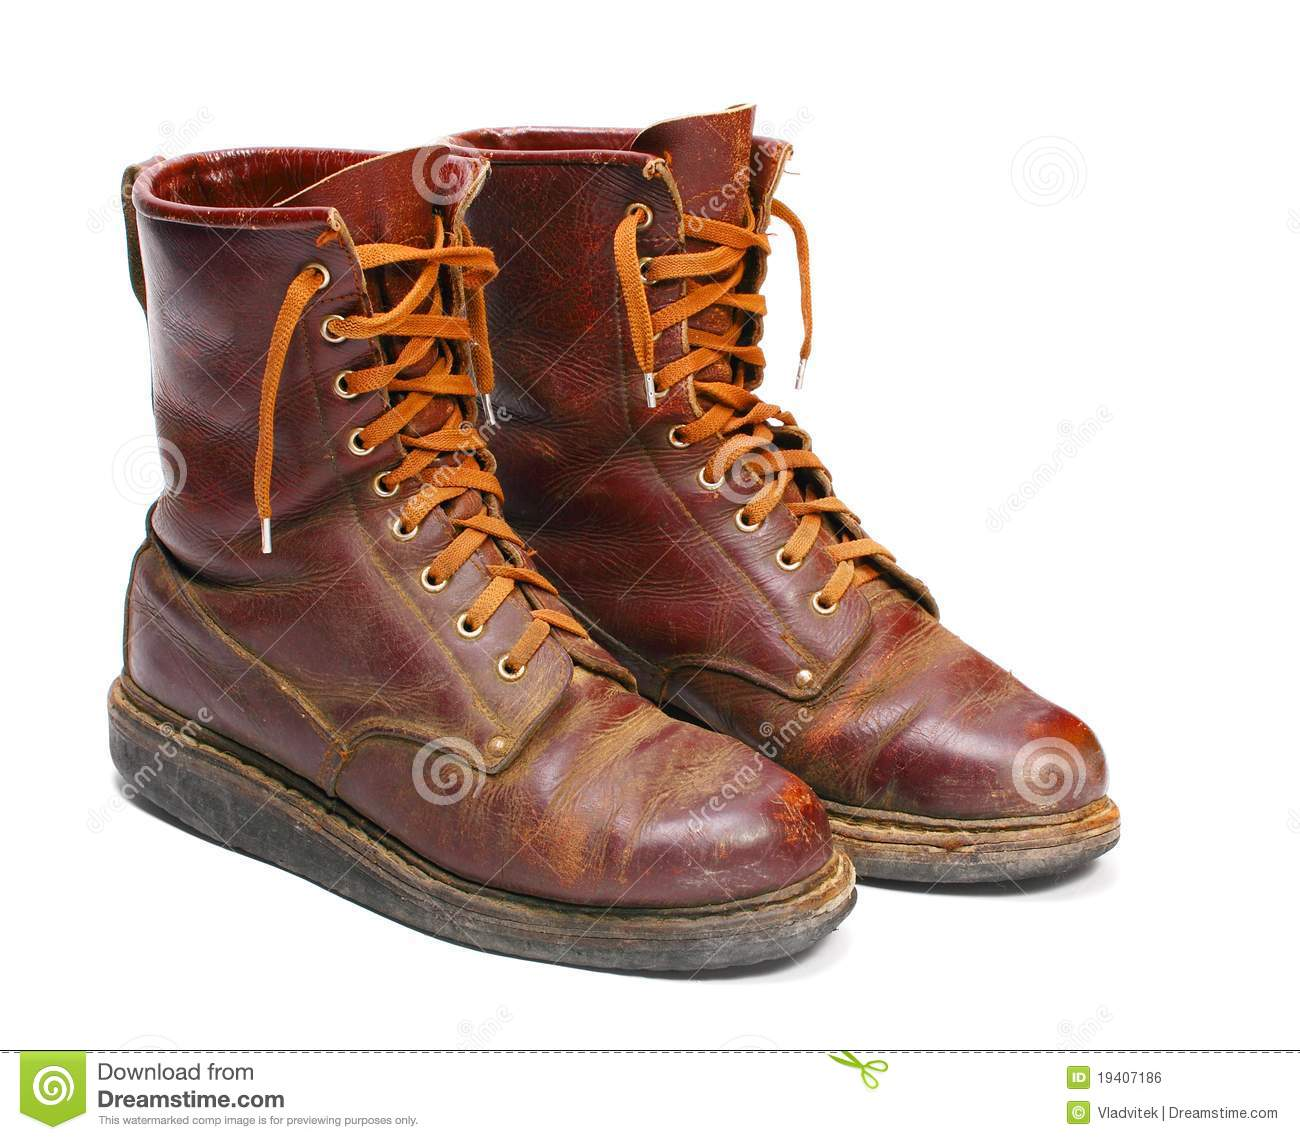 Old army paratroopers combat boots on white background.